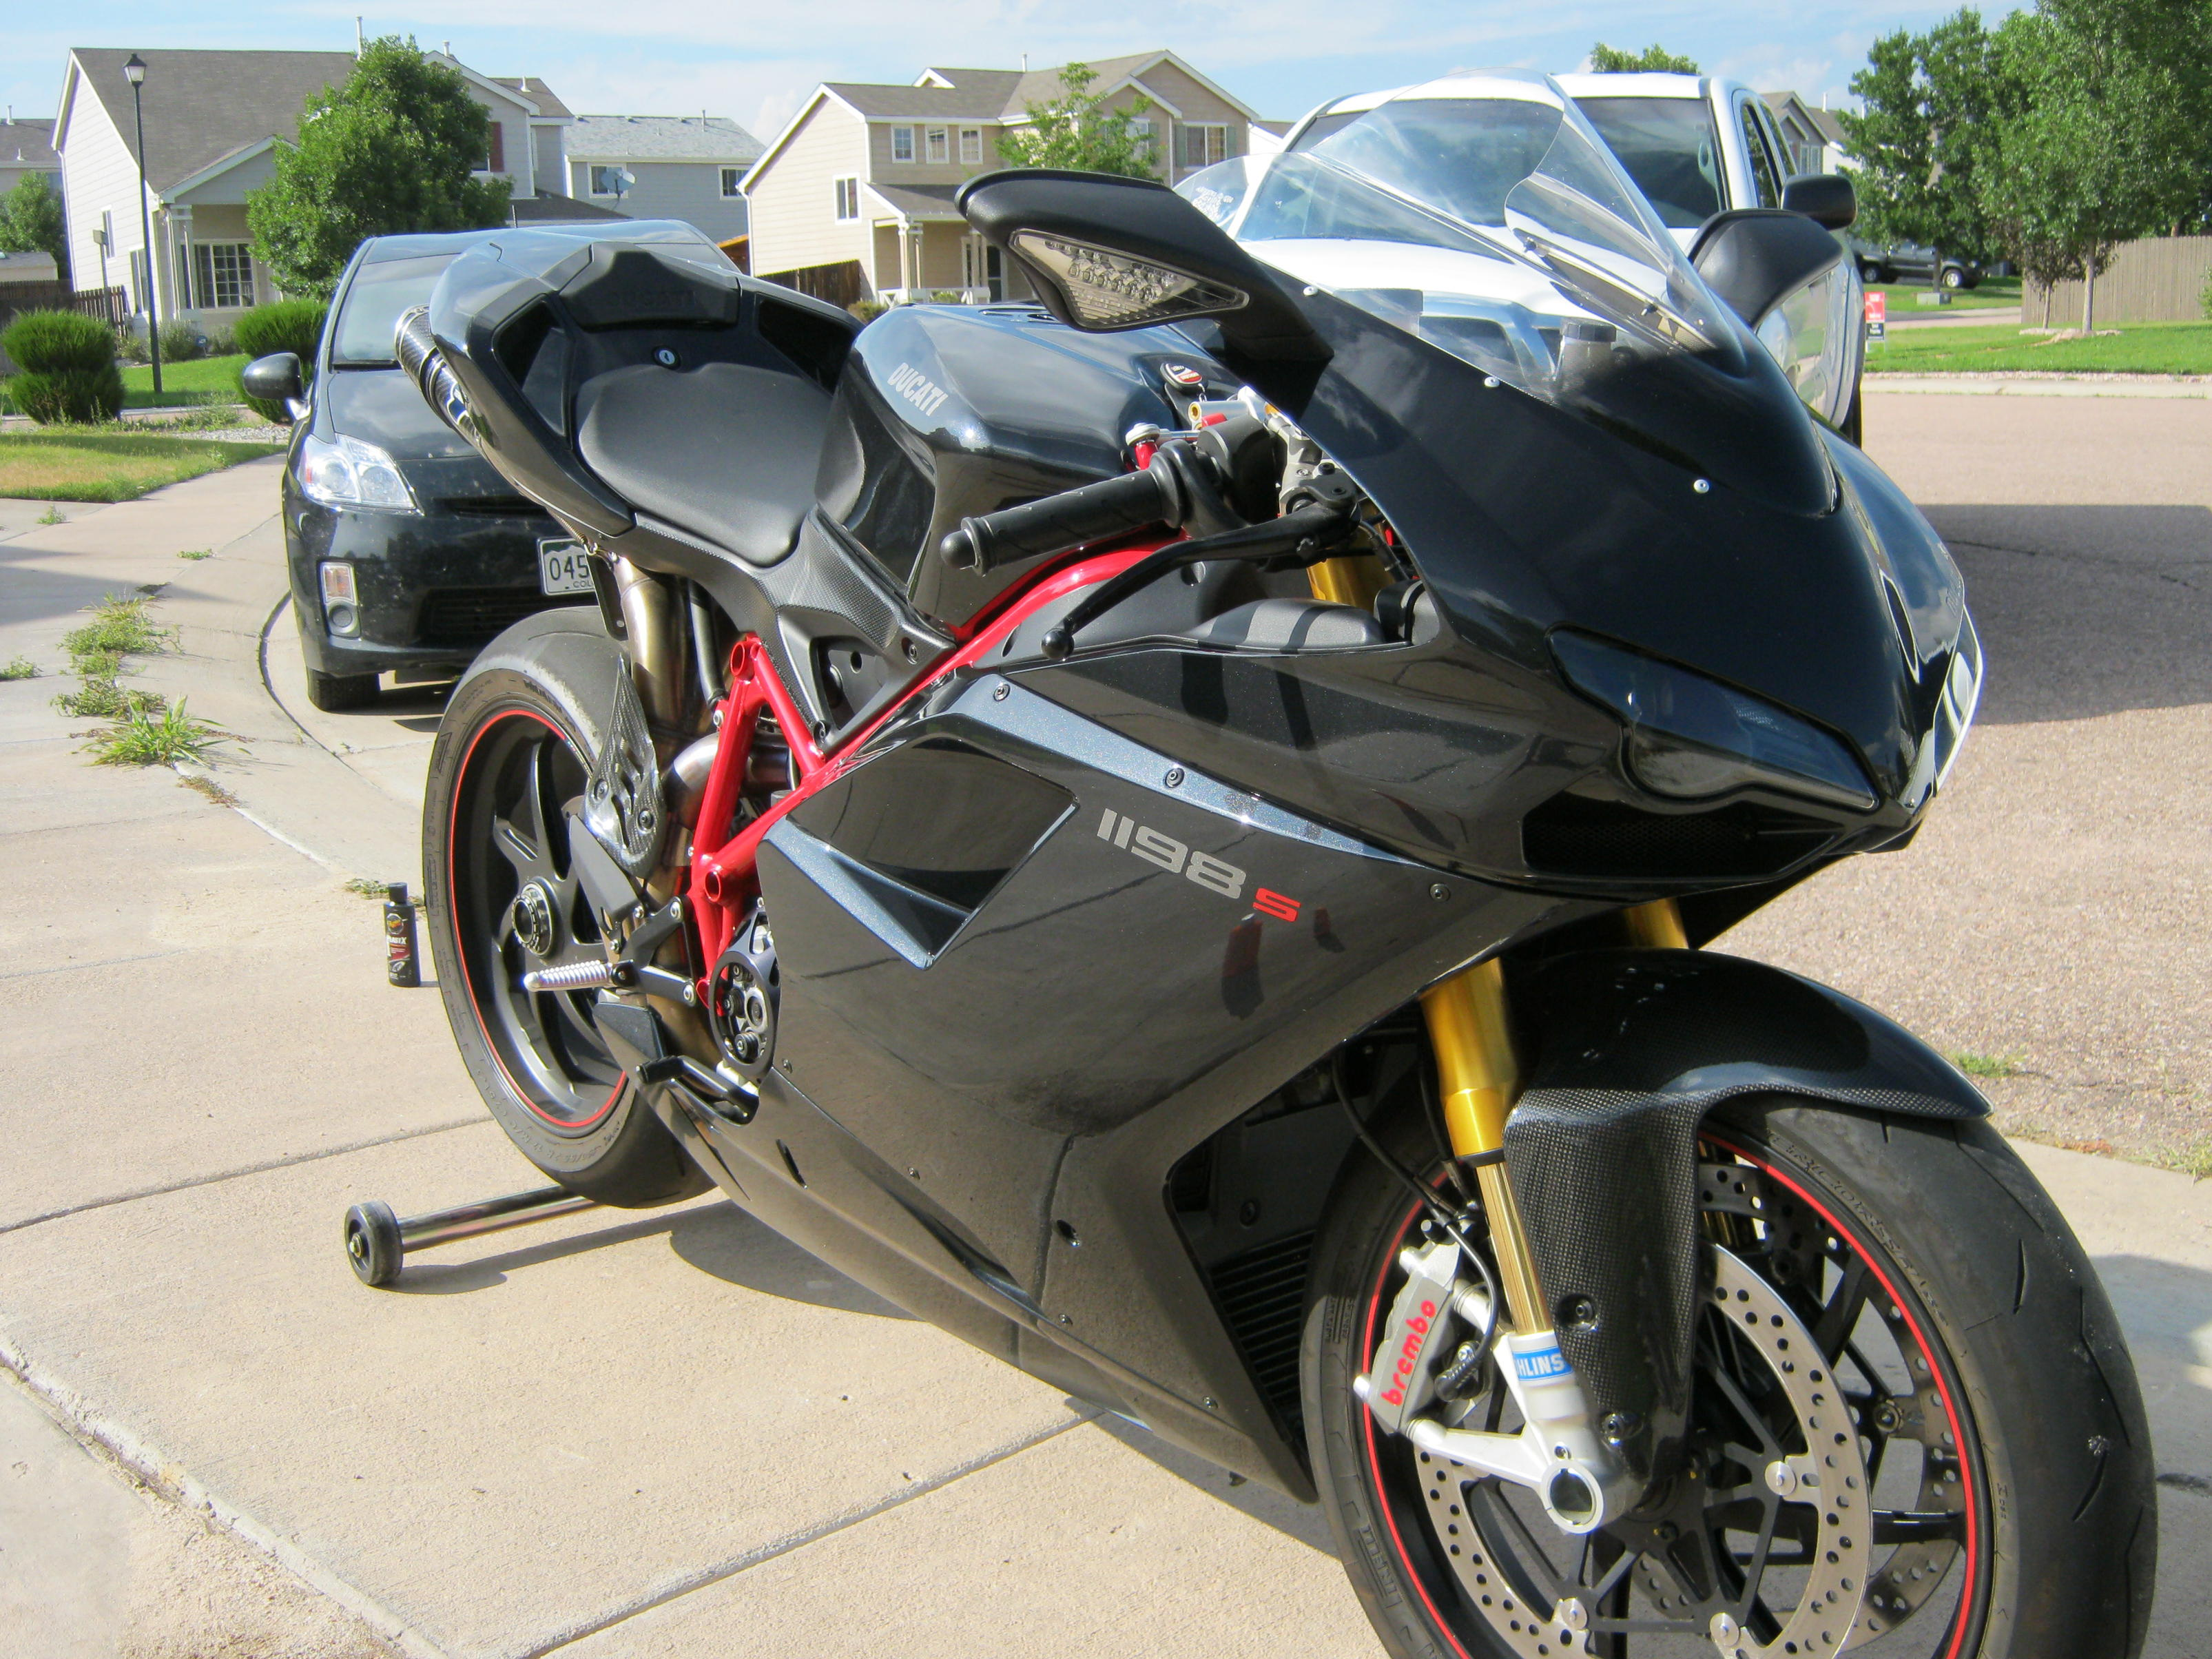 2010 (black) 1198s for sale!!!!! - ducati forum | the home for